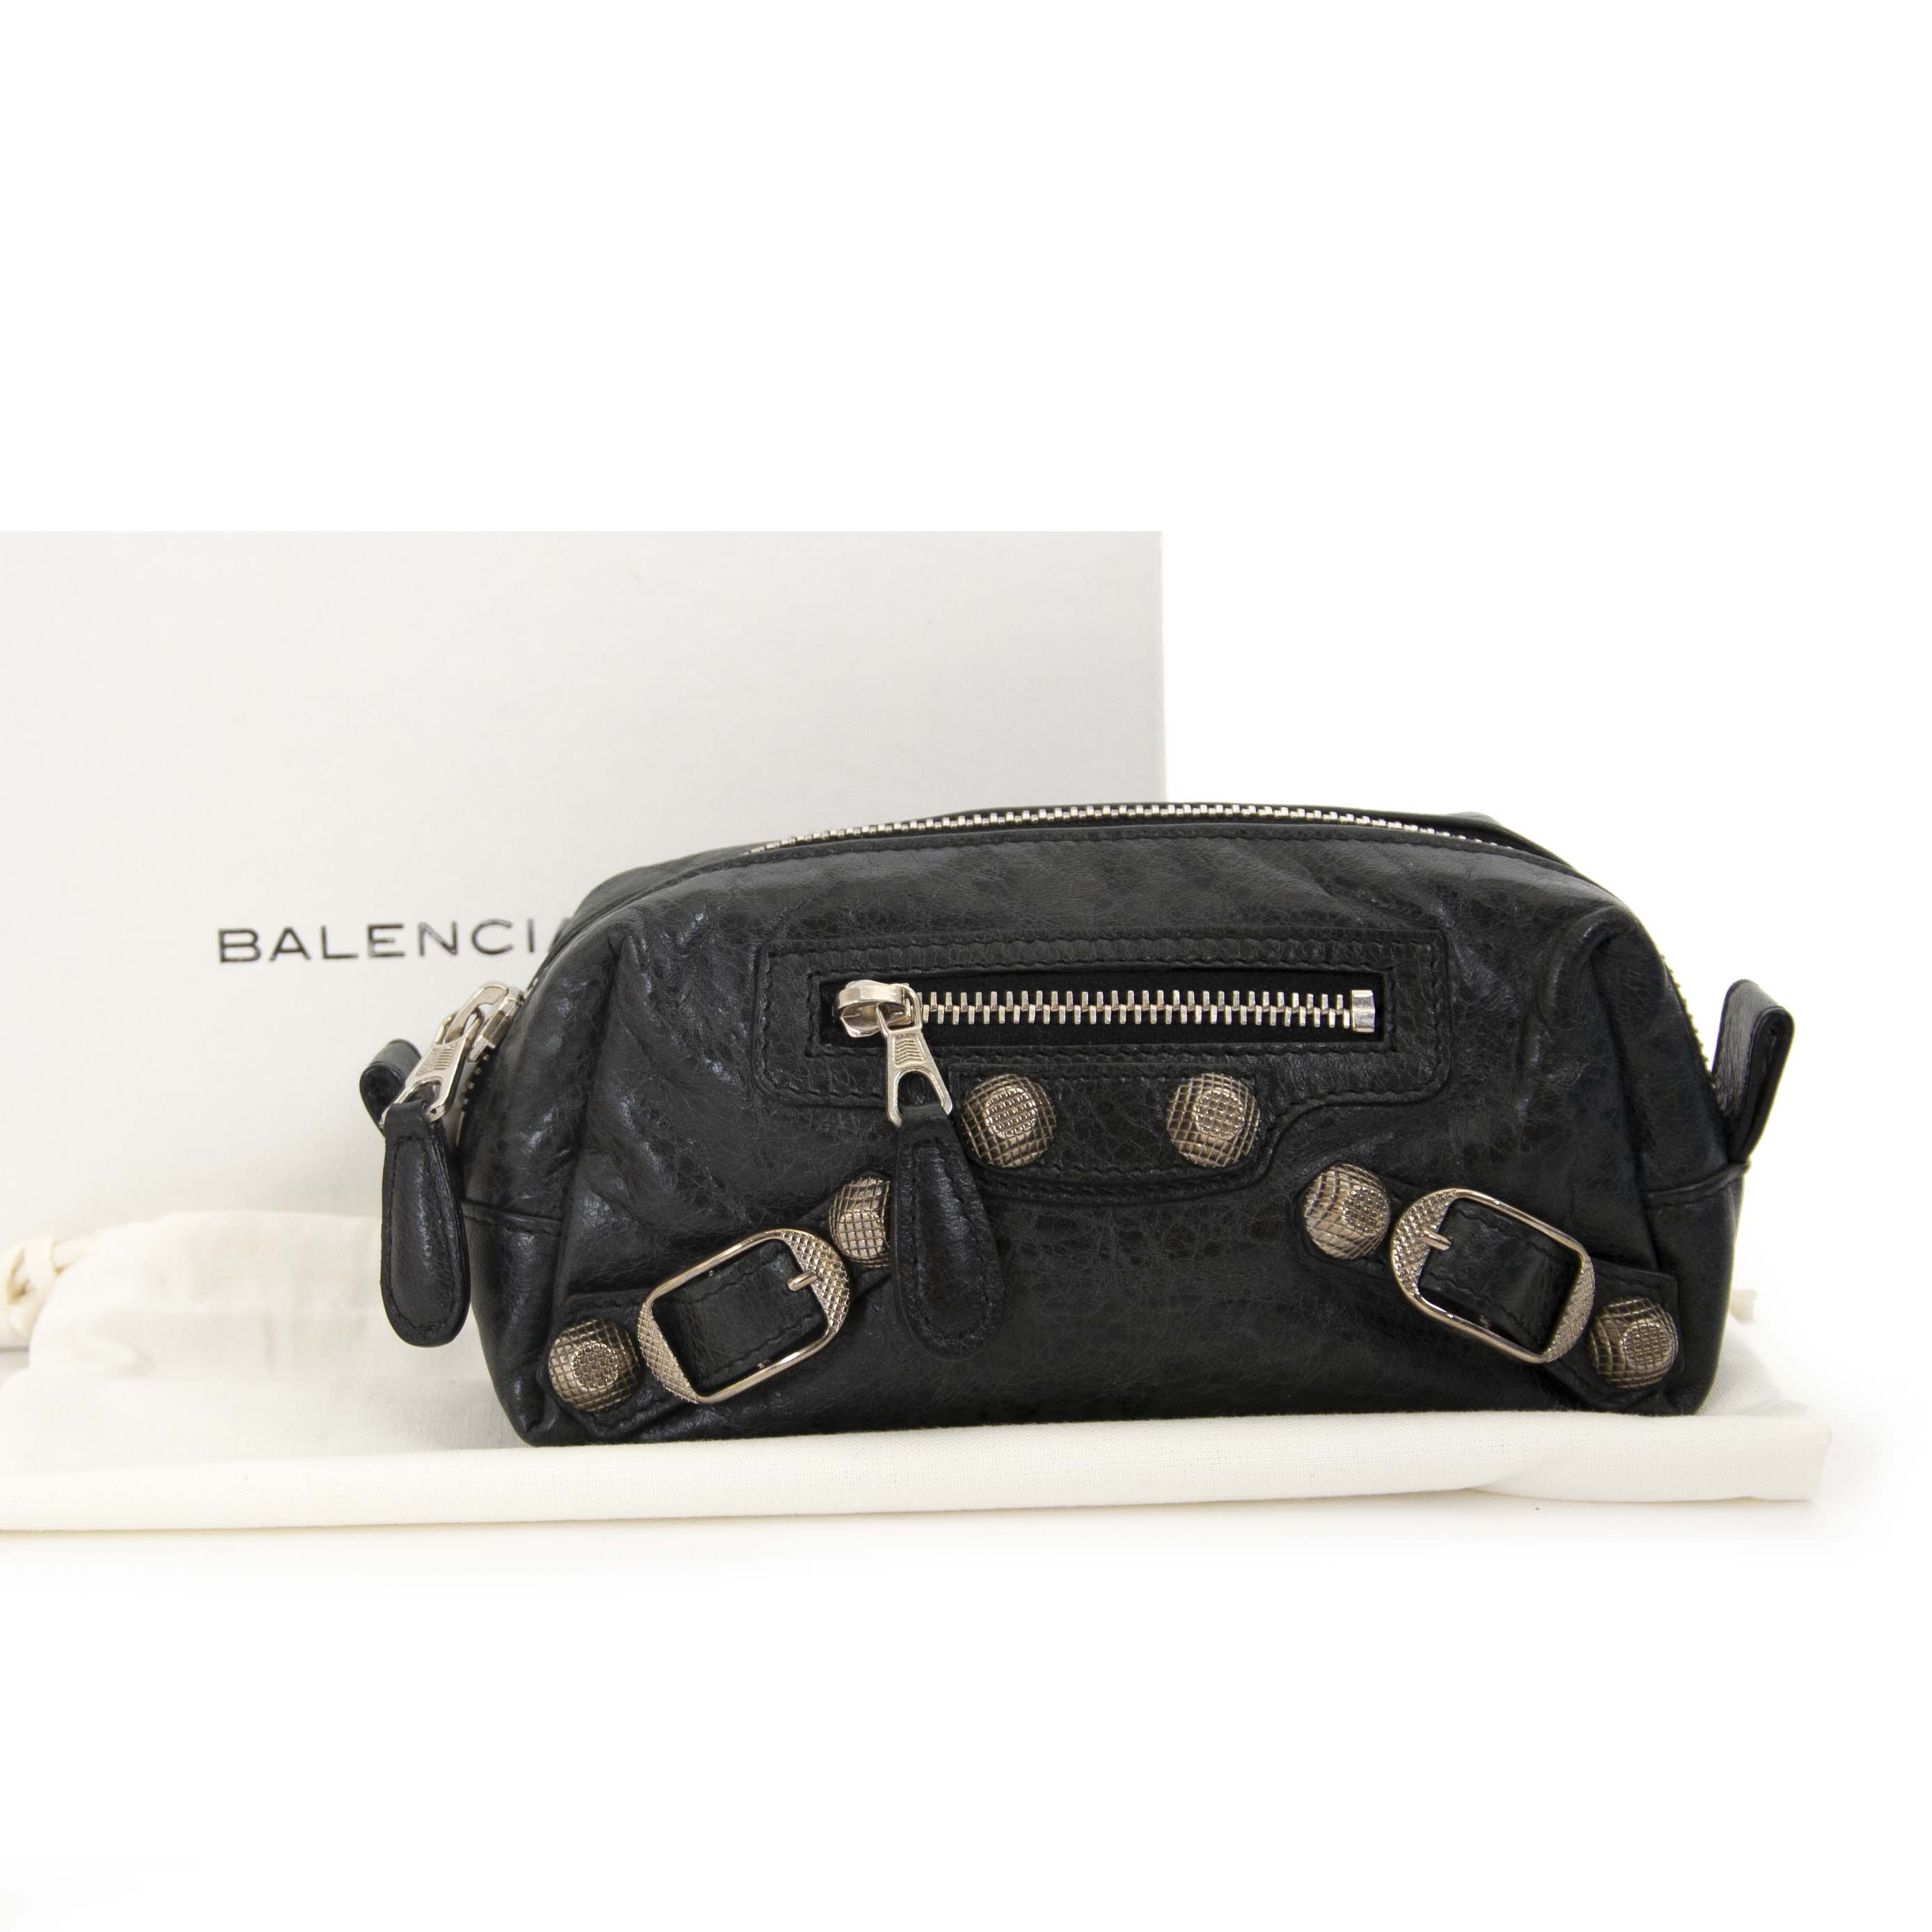 ffffee39b9 ... Balenciaga Black Lambskin Leather Giant 12 Pencil Case S now for sale  at labellov vintage fashion